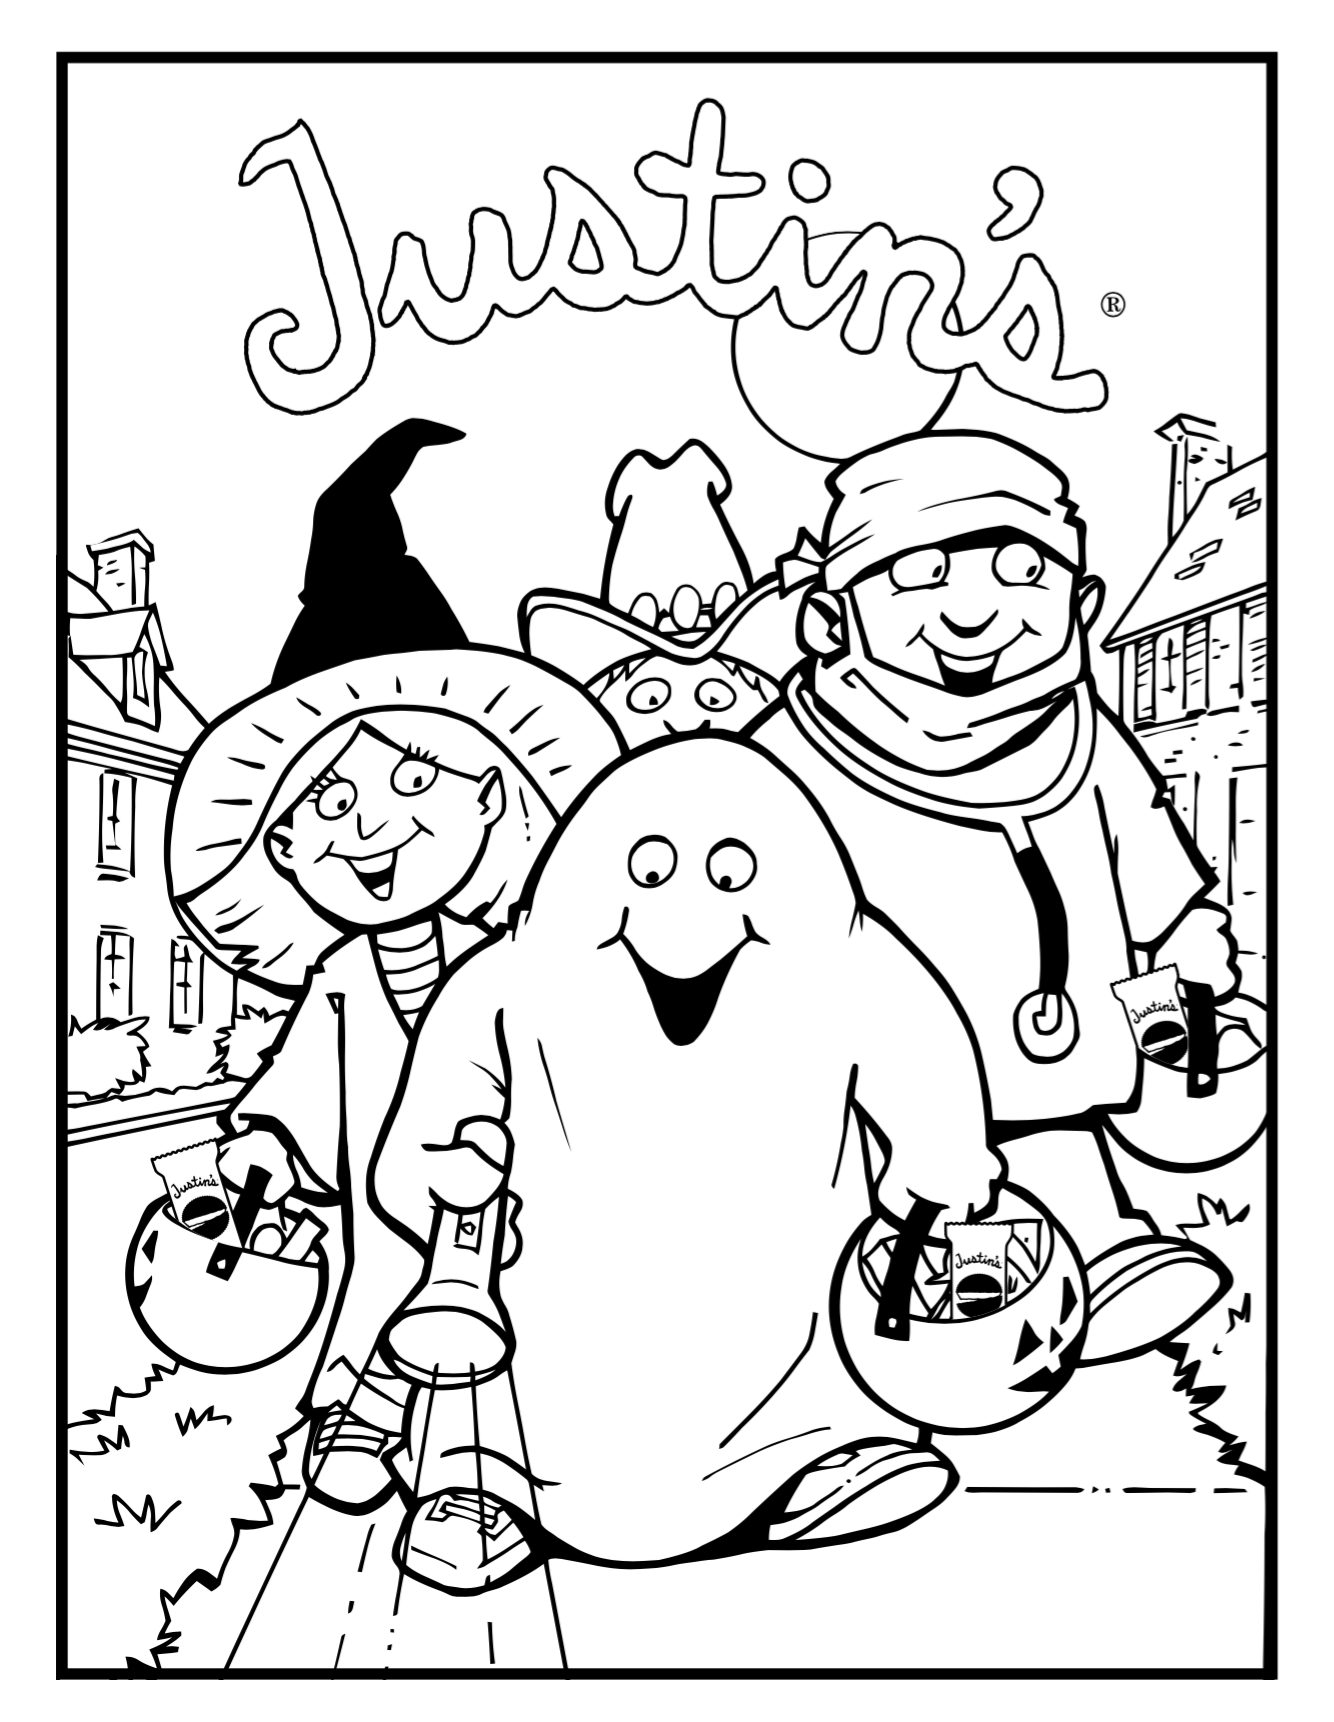 coloring sheets for halloween free halloween coloring pages for kids or for the kid in you sheets coloring for halloween